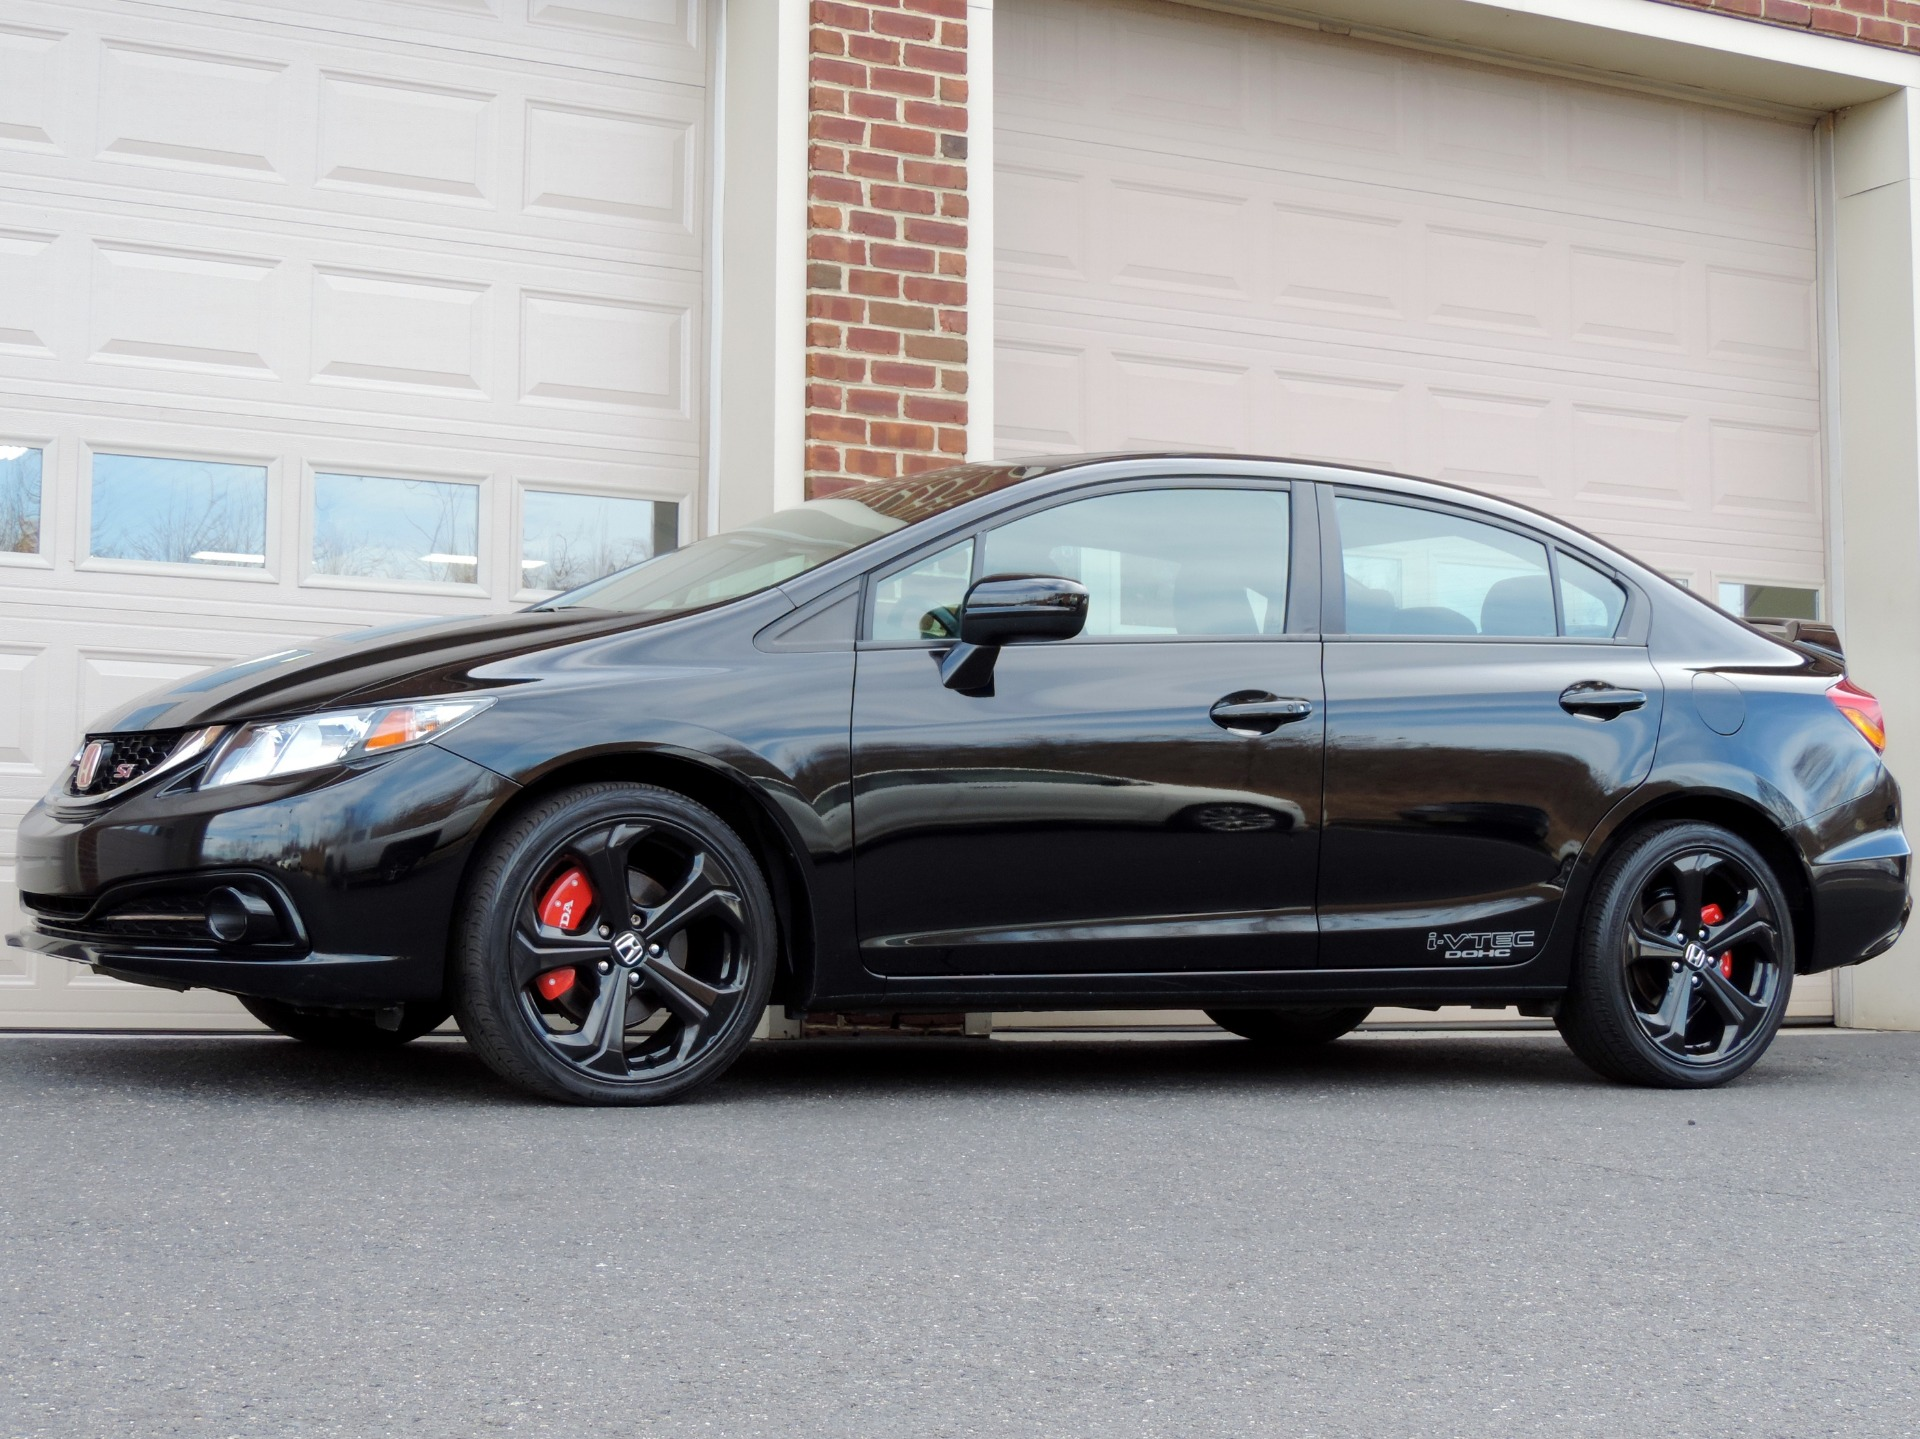 2014 Honda Civic Si Stock 705310 For Sale Near Edgewater